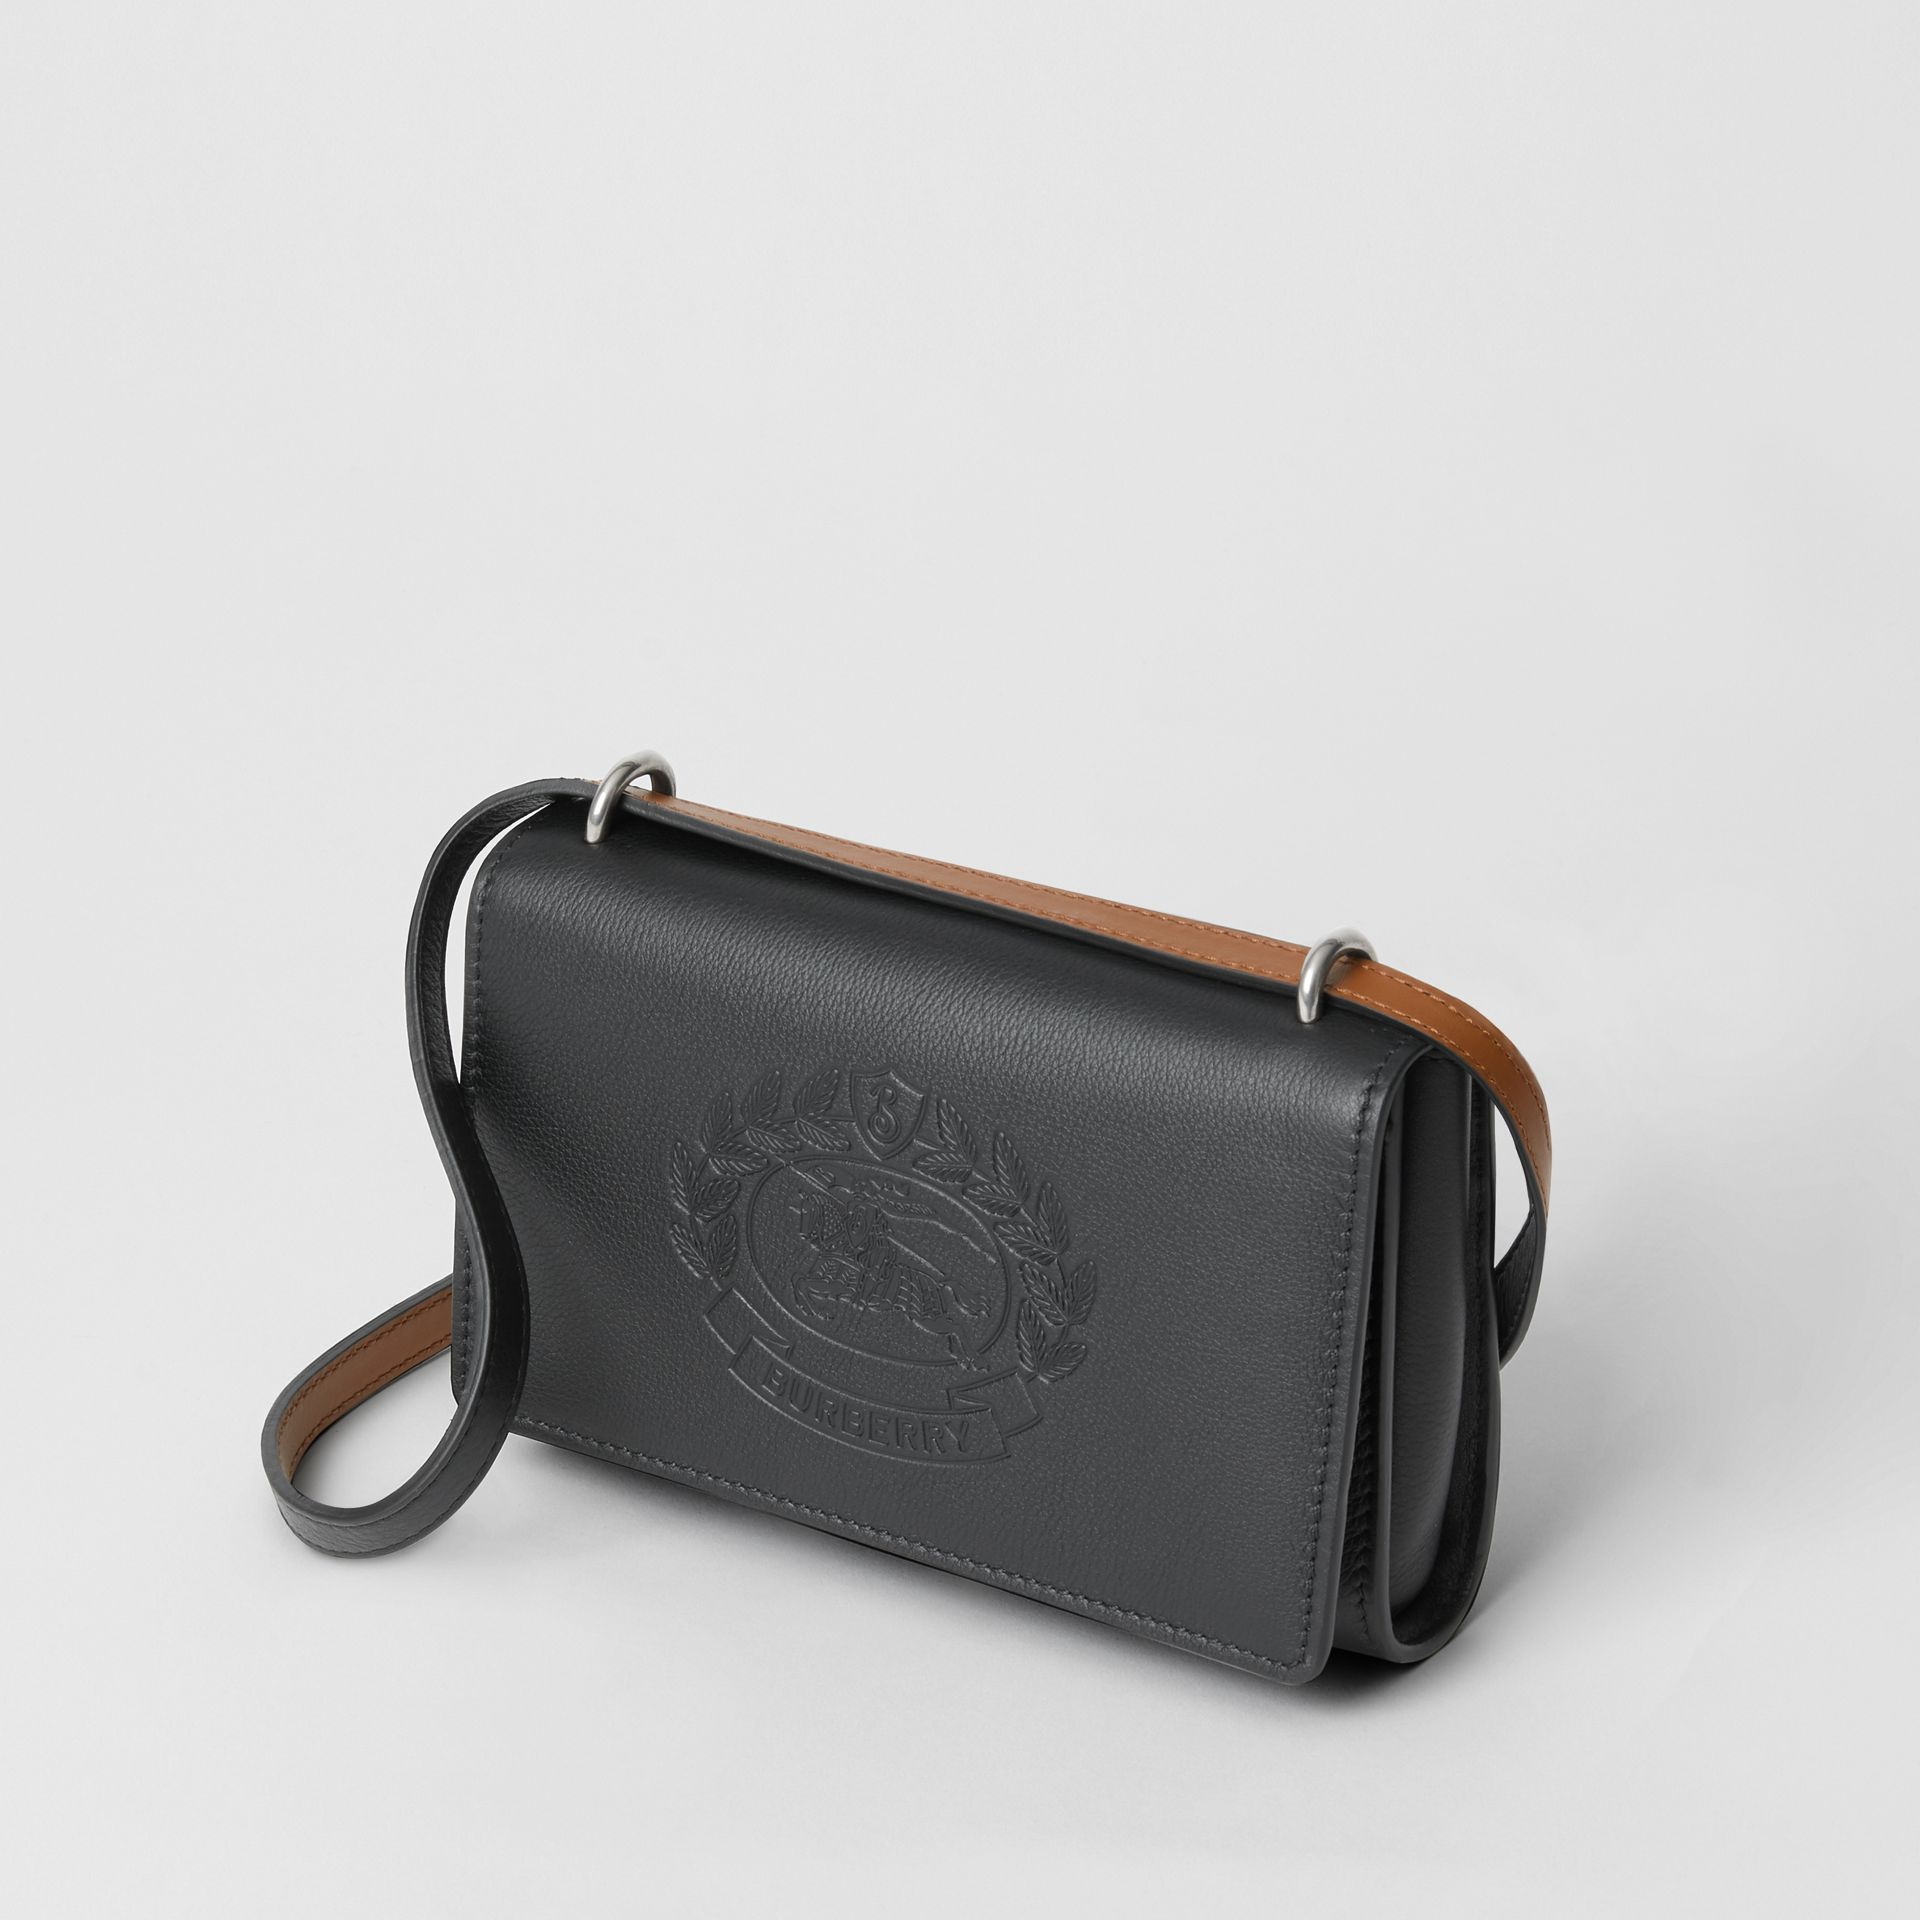 Embossed Crest Leather Wallet with Detachable Strap in Black - Women | Burberry Hong Kong - gallery image 4